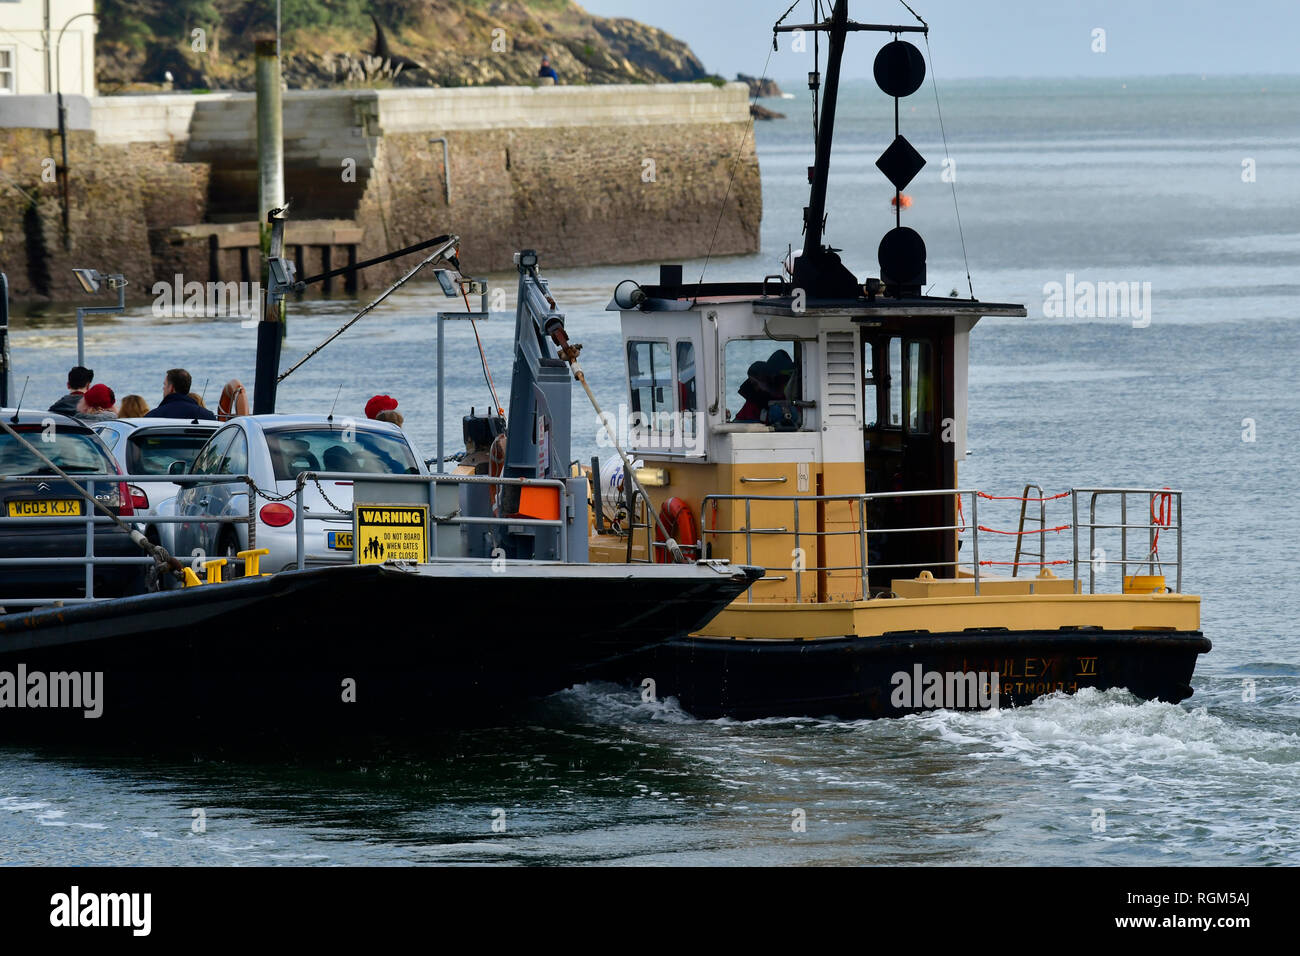 UK Weather.On mild and overcast afternoon on the River Dart,people can be seen crossing on the Lower ferry by car and as foot passengers,and the hills - Stock Image